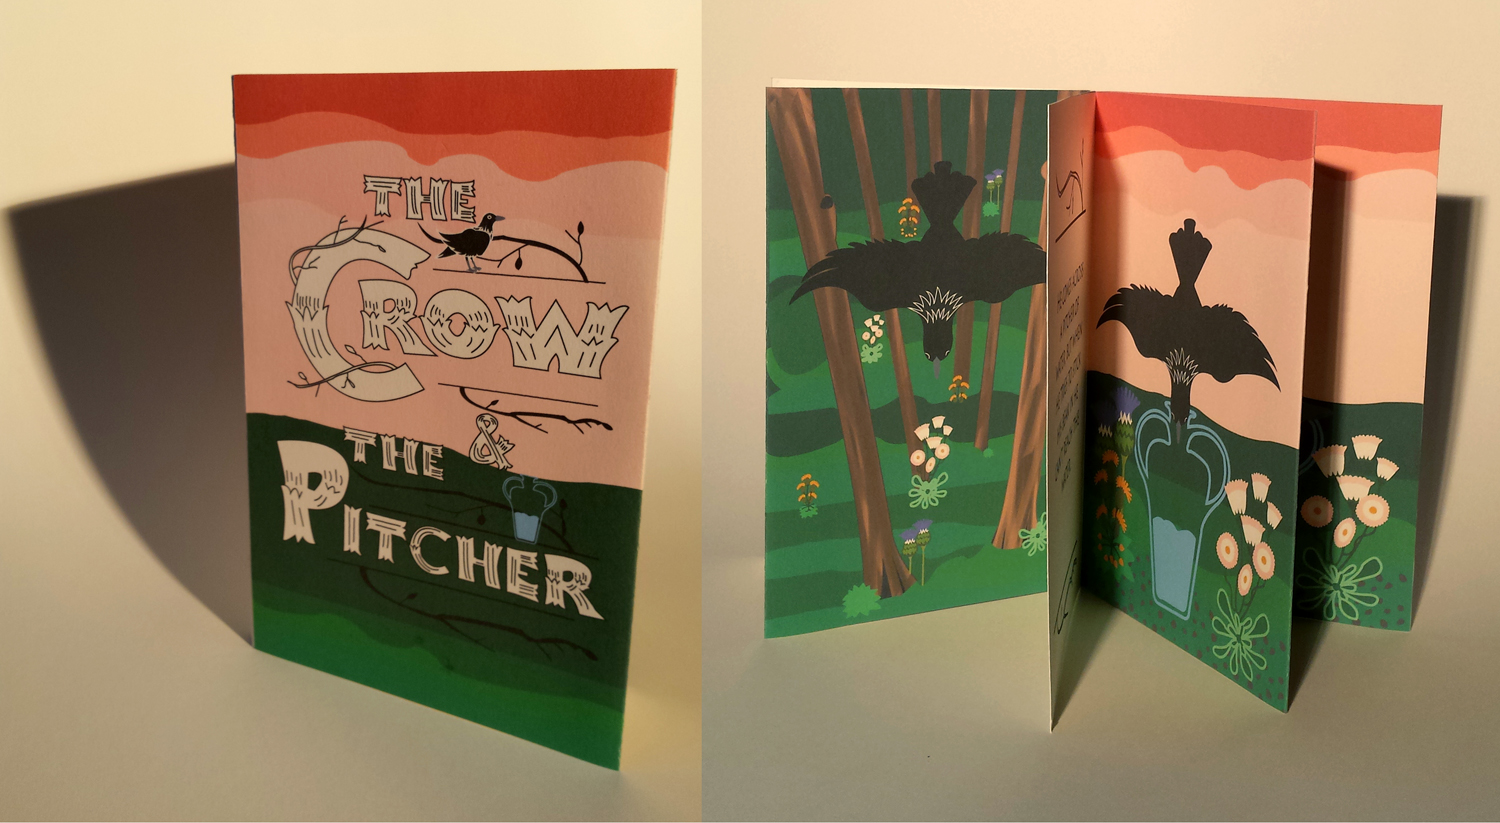 "Angelica Rodgers, Lebanon, IL. The Crow and The Pitcher. 2016. Handmade Book: Adobe Illustrator, Archival Inkjet Printing on Fabriaro Paper, Bound with String, 8.5""x5.5""x.25"". Not for Sale. McKendree University. Professor: Amy MacLennan."